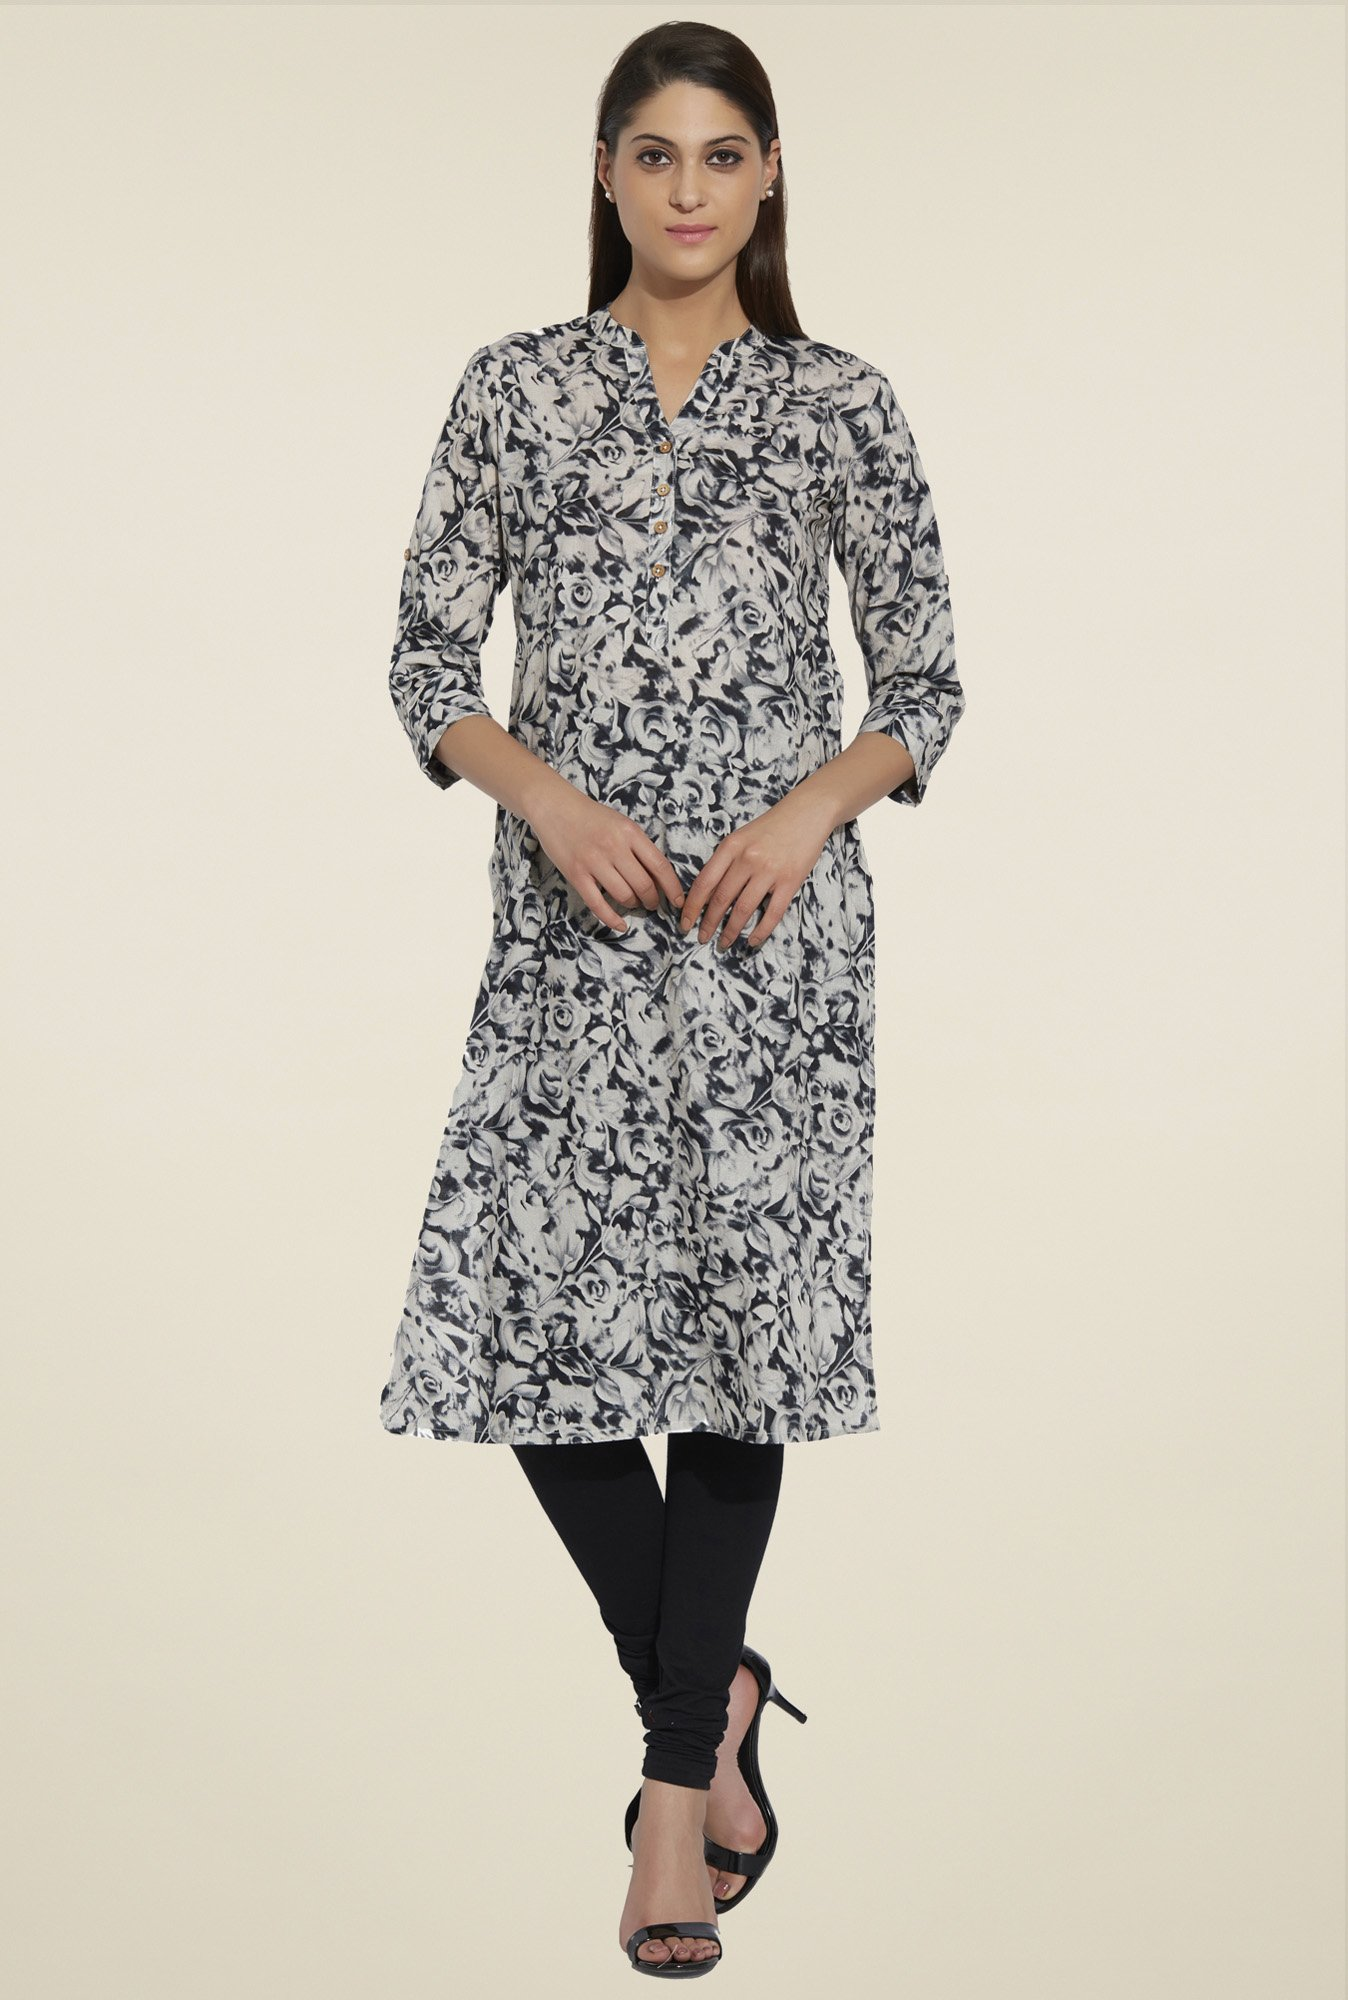 Globus Off-White & Black Floral Kurta